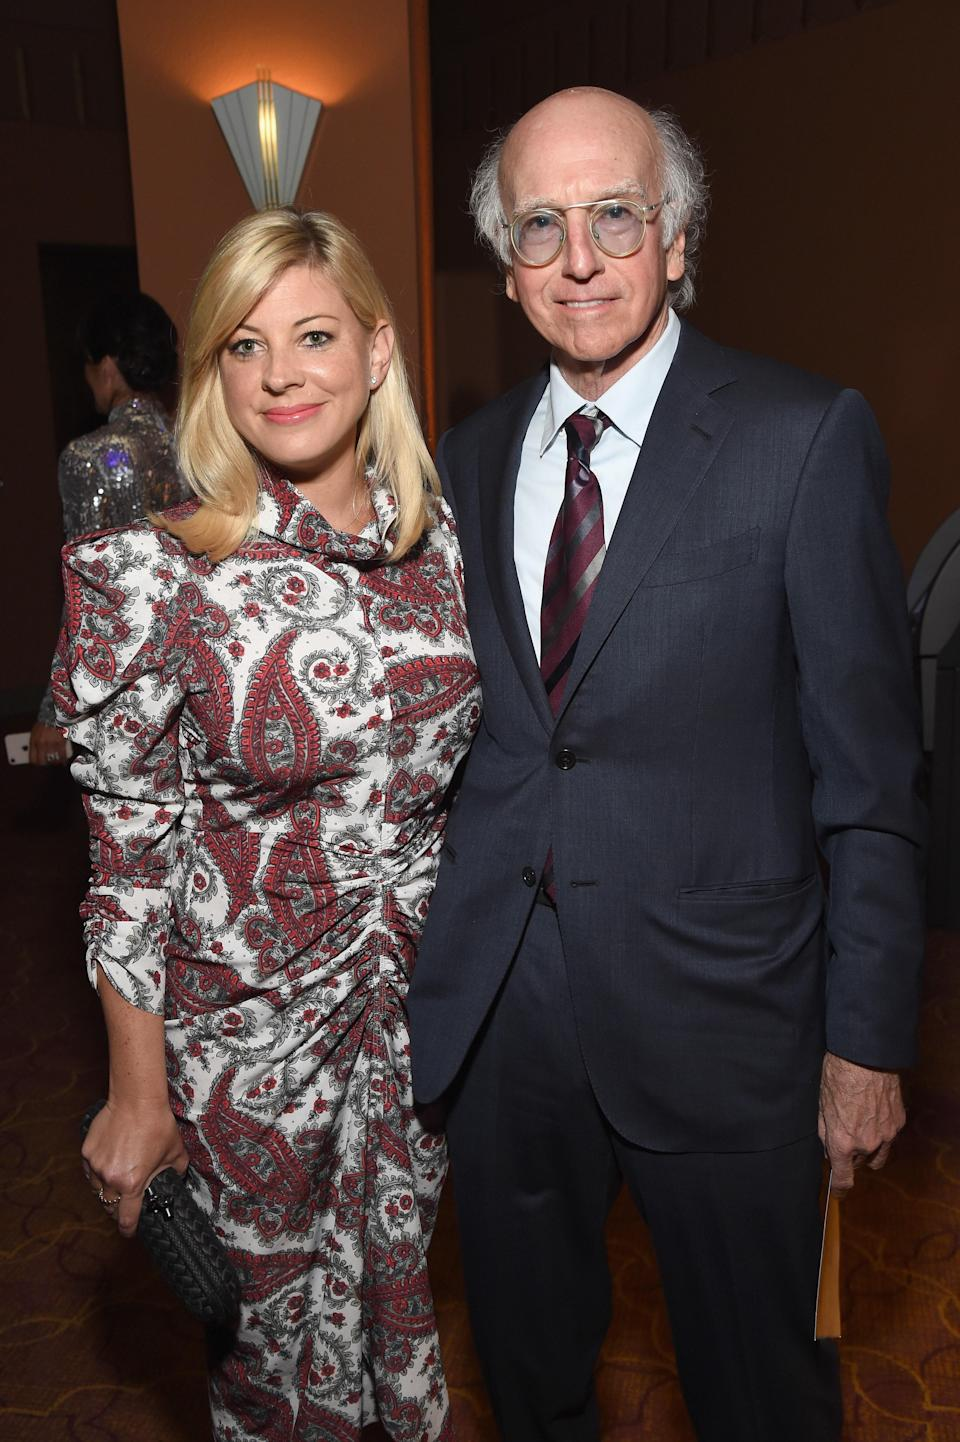 """The <em>Curb Your Enthusiasm</em> star married Ashley Underwood on October 7 in California, <a href=""""https://people.com/tv/larry-david-marries-ashley-underwood/"""" rel=""""nofollow noopener"""" target=""""_blank"""" data-ylk=""""slk:according to People"""" class=""""link rapid-noclick-resp"""">according to <em>People</em></a>. The couple reportedly met through Sacha Baron Cohen and Isla Fisher back in 2017. """"We were seated next to each other, I think with that in mind,"""" David previously <a href=""""https://www.nytimes.com/2020/04/04/style/larry-david-curb-your-enthusiasm-coronavirus-psa.html"""" rel=""""nofollow noopener"""" target=""""_blank"""" data-ylk=""""slk:told the New York Times"""" class=""""link rapid-noclick-resp"""">told the <em>New York Times</em></a>. """"Much to her surprise, I left before dessert. I was doing so well, banter-wise, I didn't want to risk staying too long and blowing the good impression."""""""